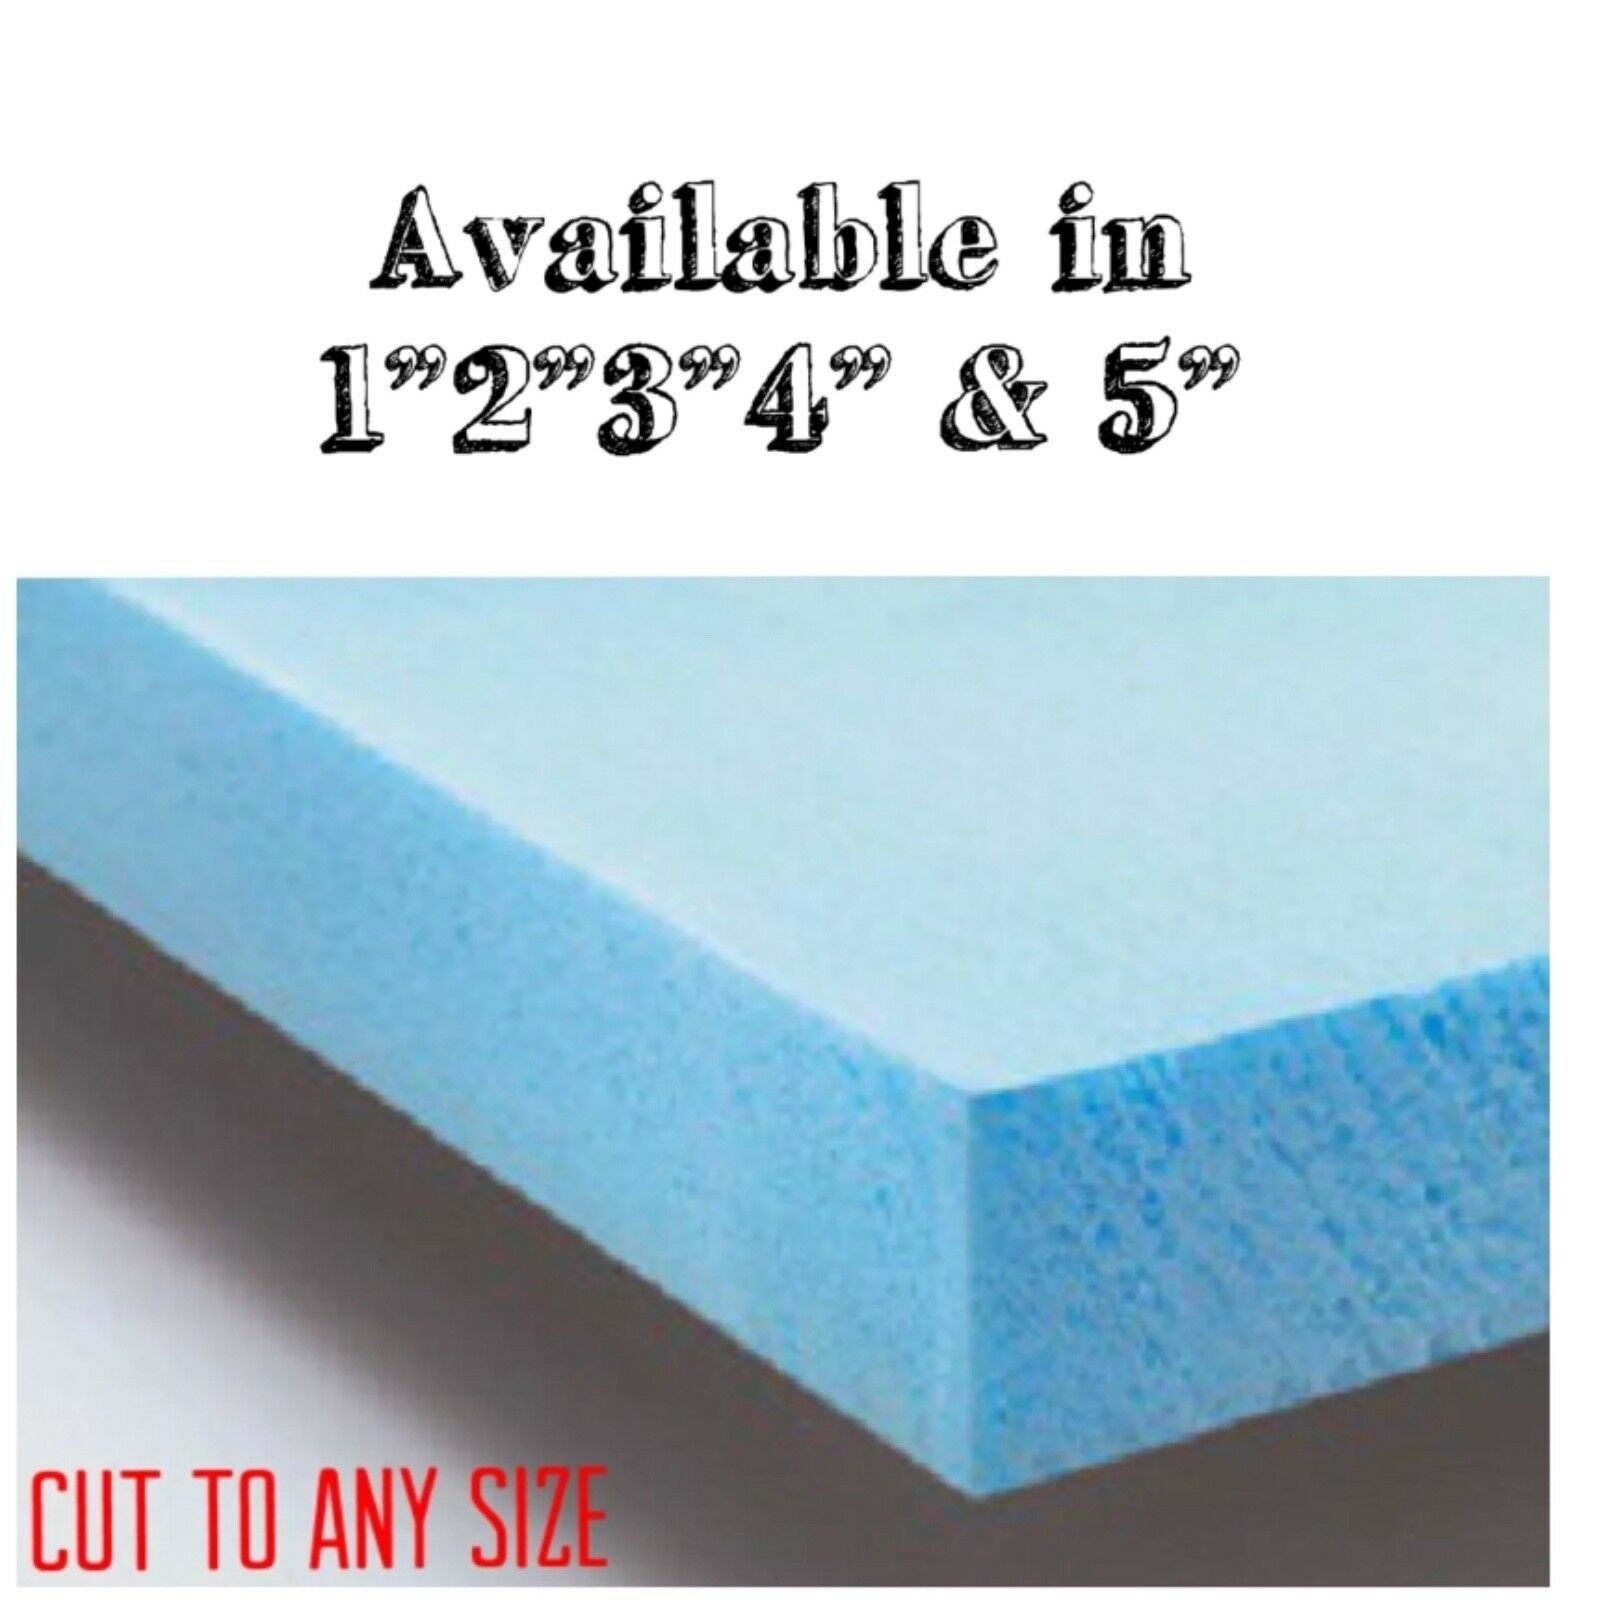 Reflex Foam Sheets Any High Density Upholstery Sheet Cut To Any Größe And Depths